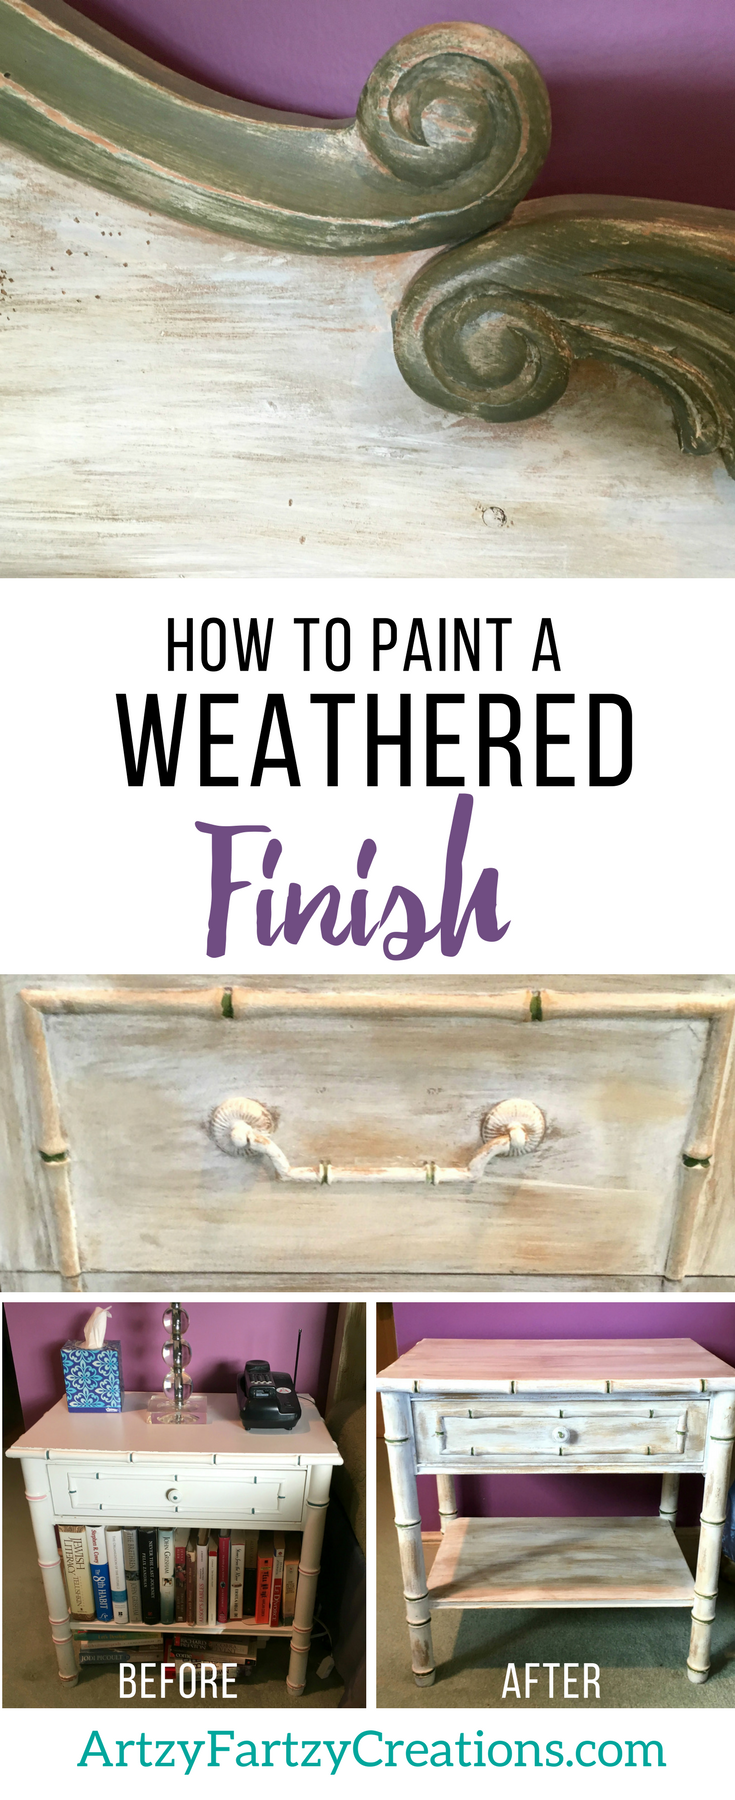 How to Paint a Beachy, Weathered Furniture Finish by Cheryl Phan   How to Paint Furniture   Furniture Painting Tips   Coast Furniture   Beach Decor   Furniture Makover Ideas   Rustic Bedroom Furniture